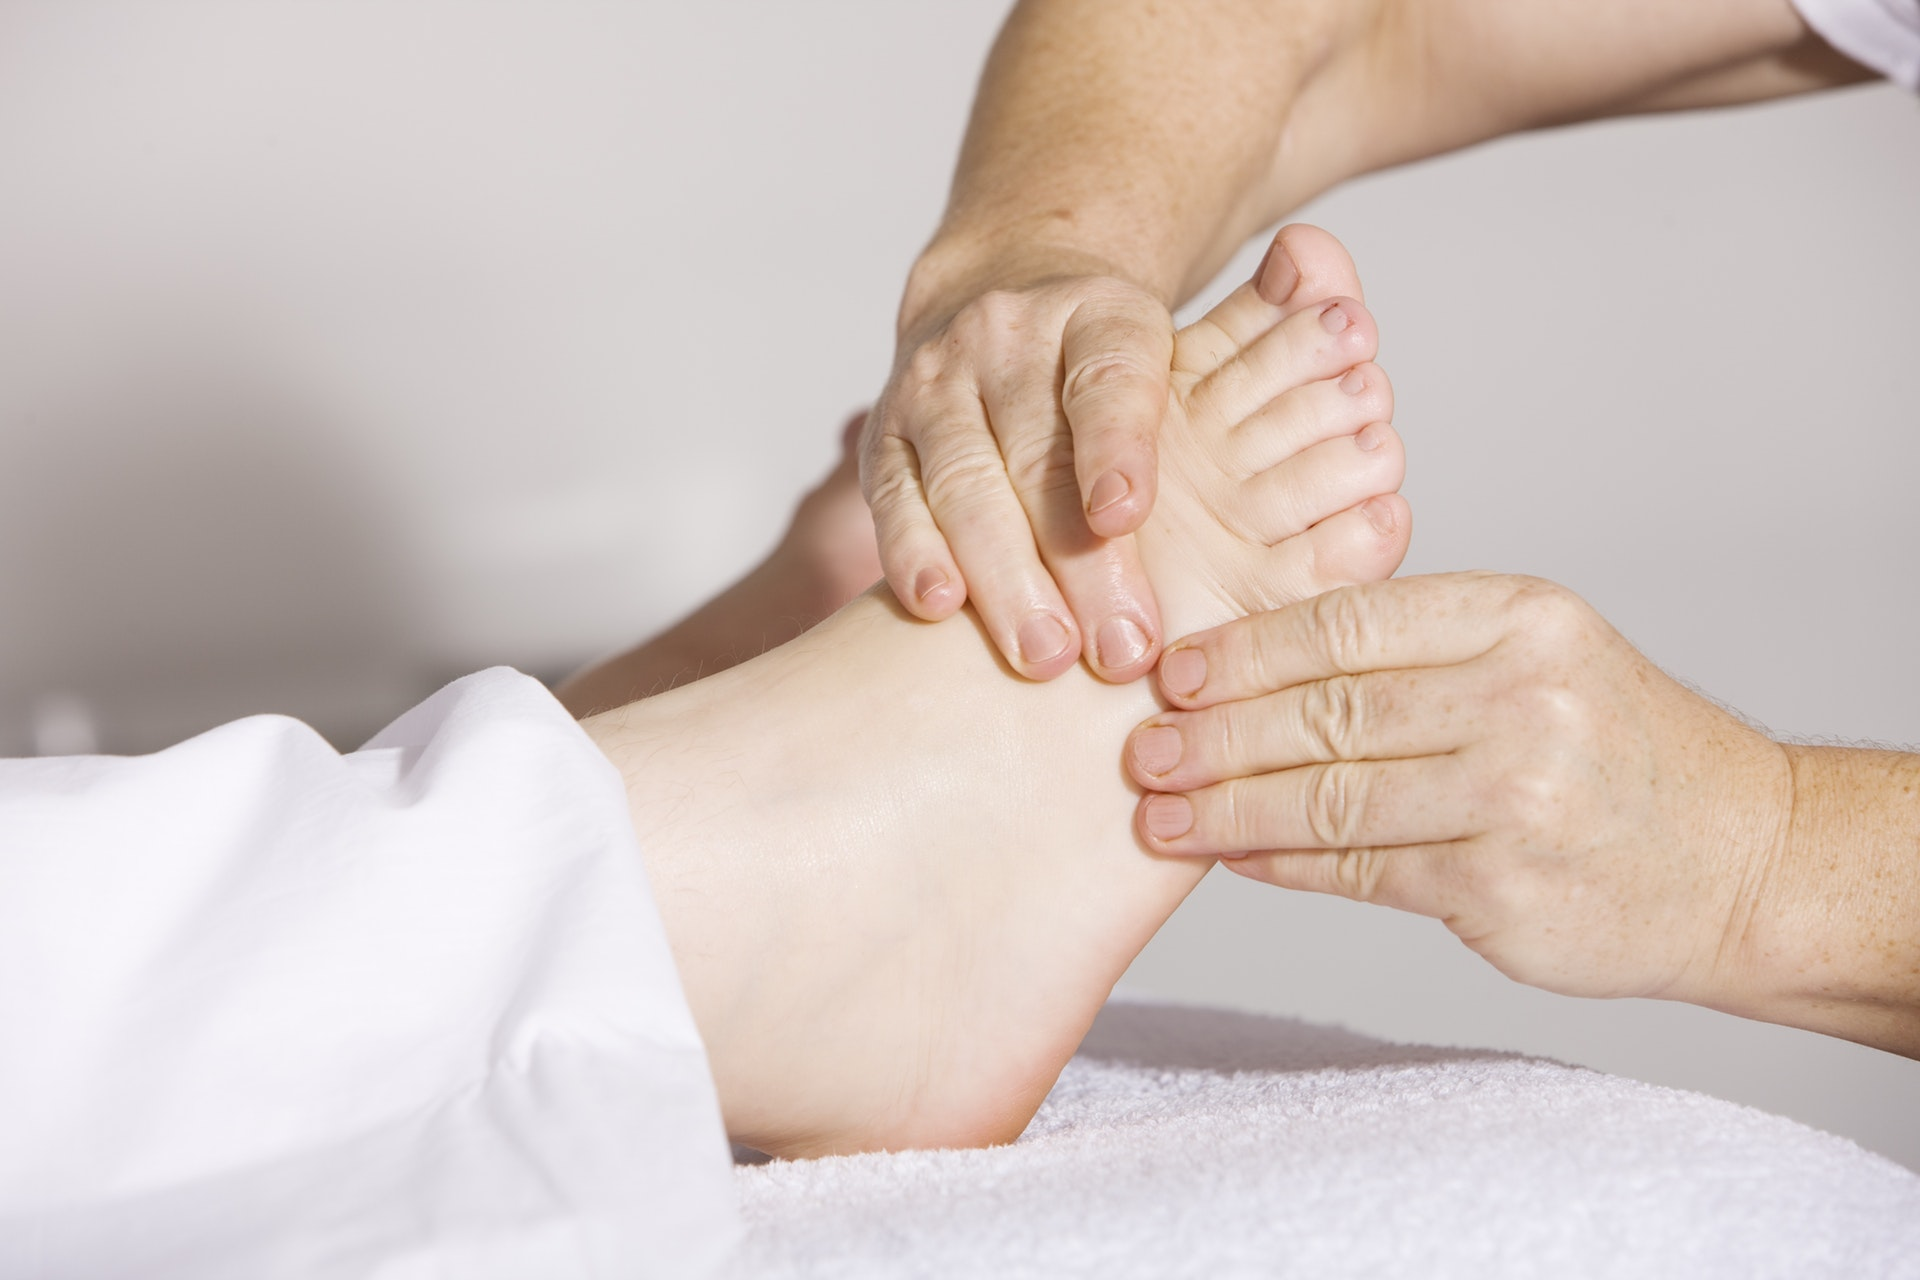 Massage Therapy Special - Free evaluation, and massage for 50 minutes by one of our highly experienced massage therapists$35